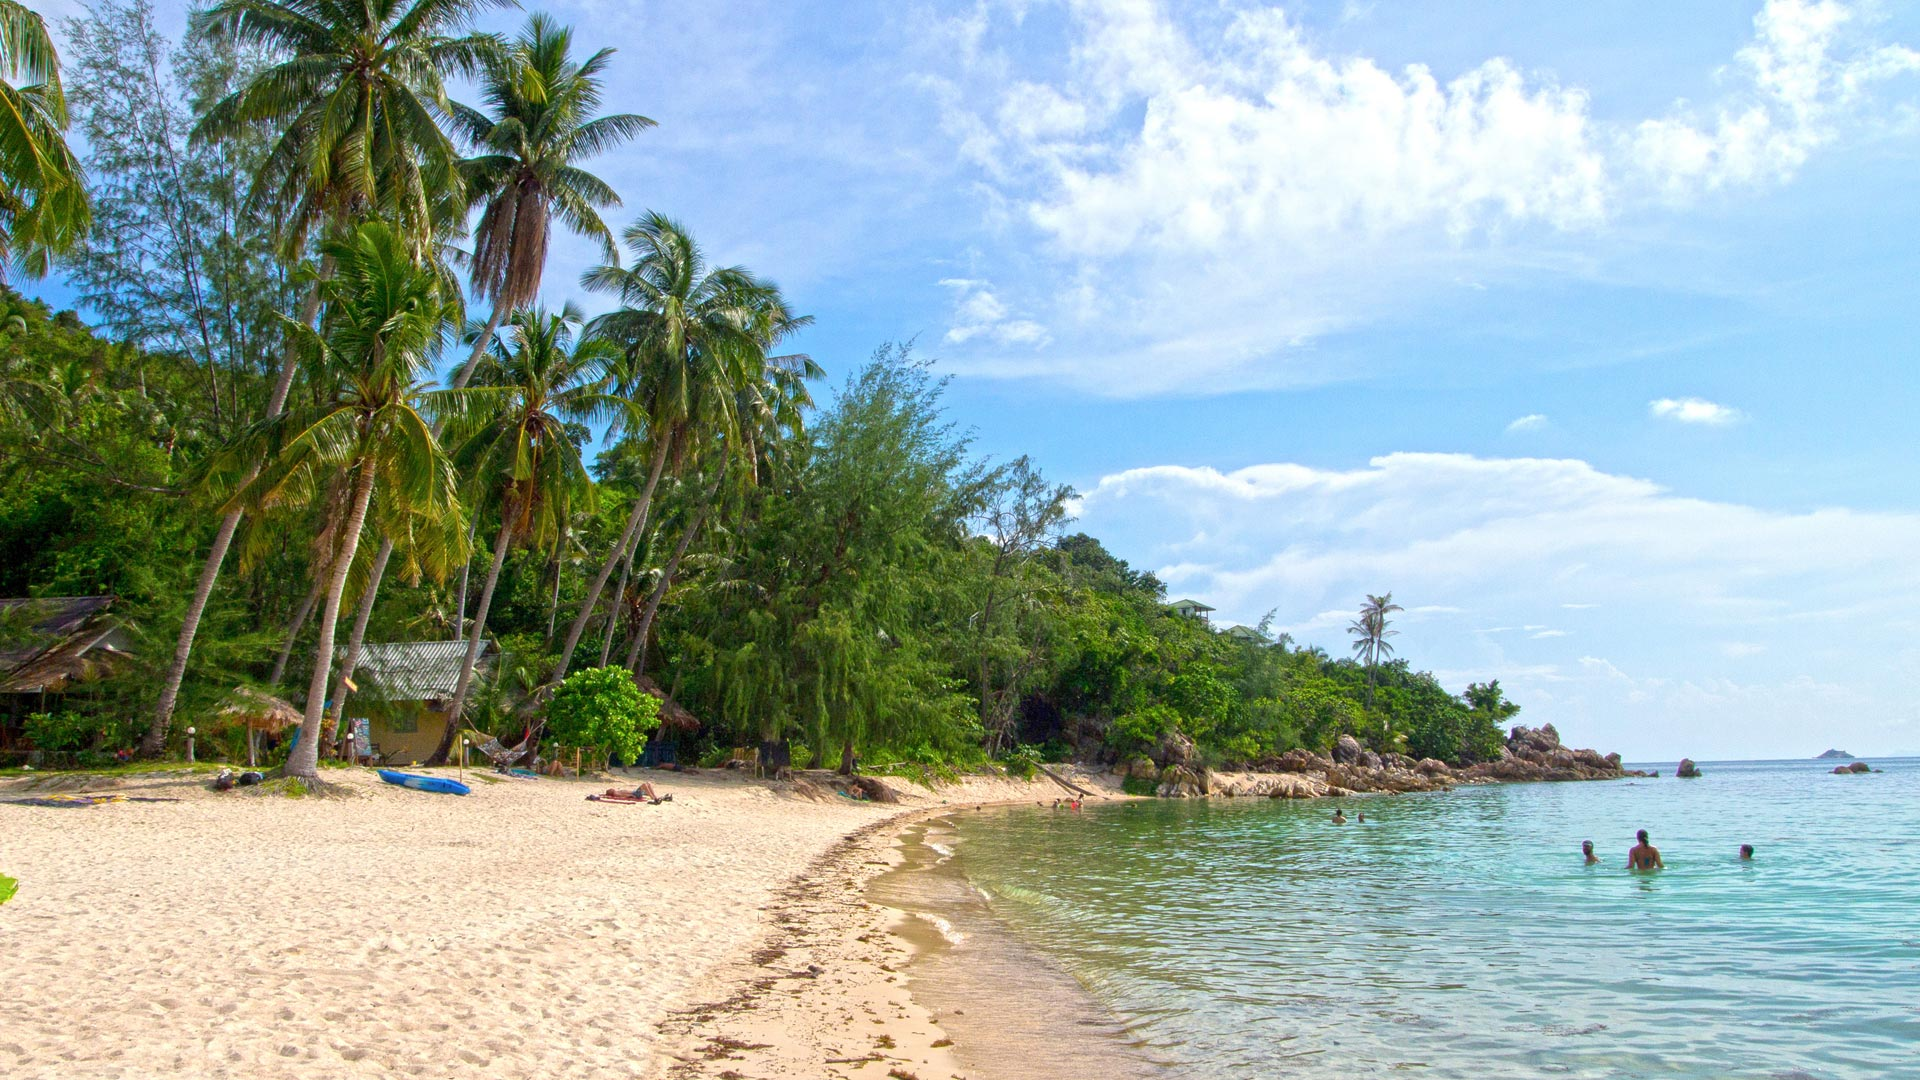 Koh Phangan beach guide – 10 beaches you need to visit